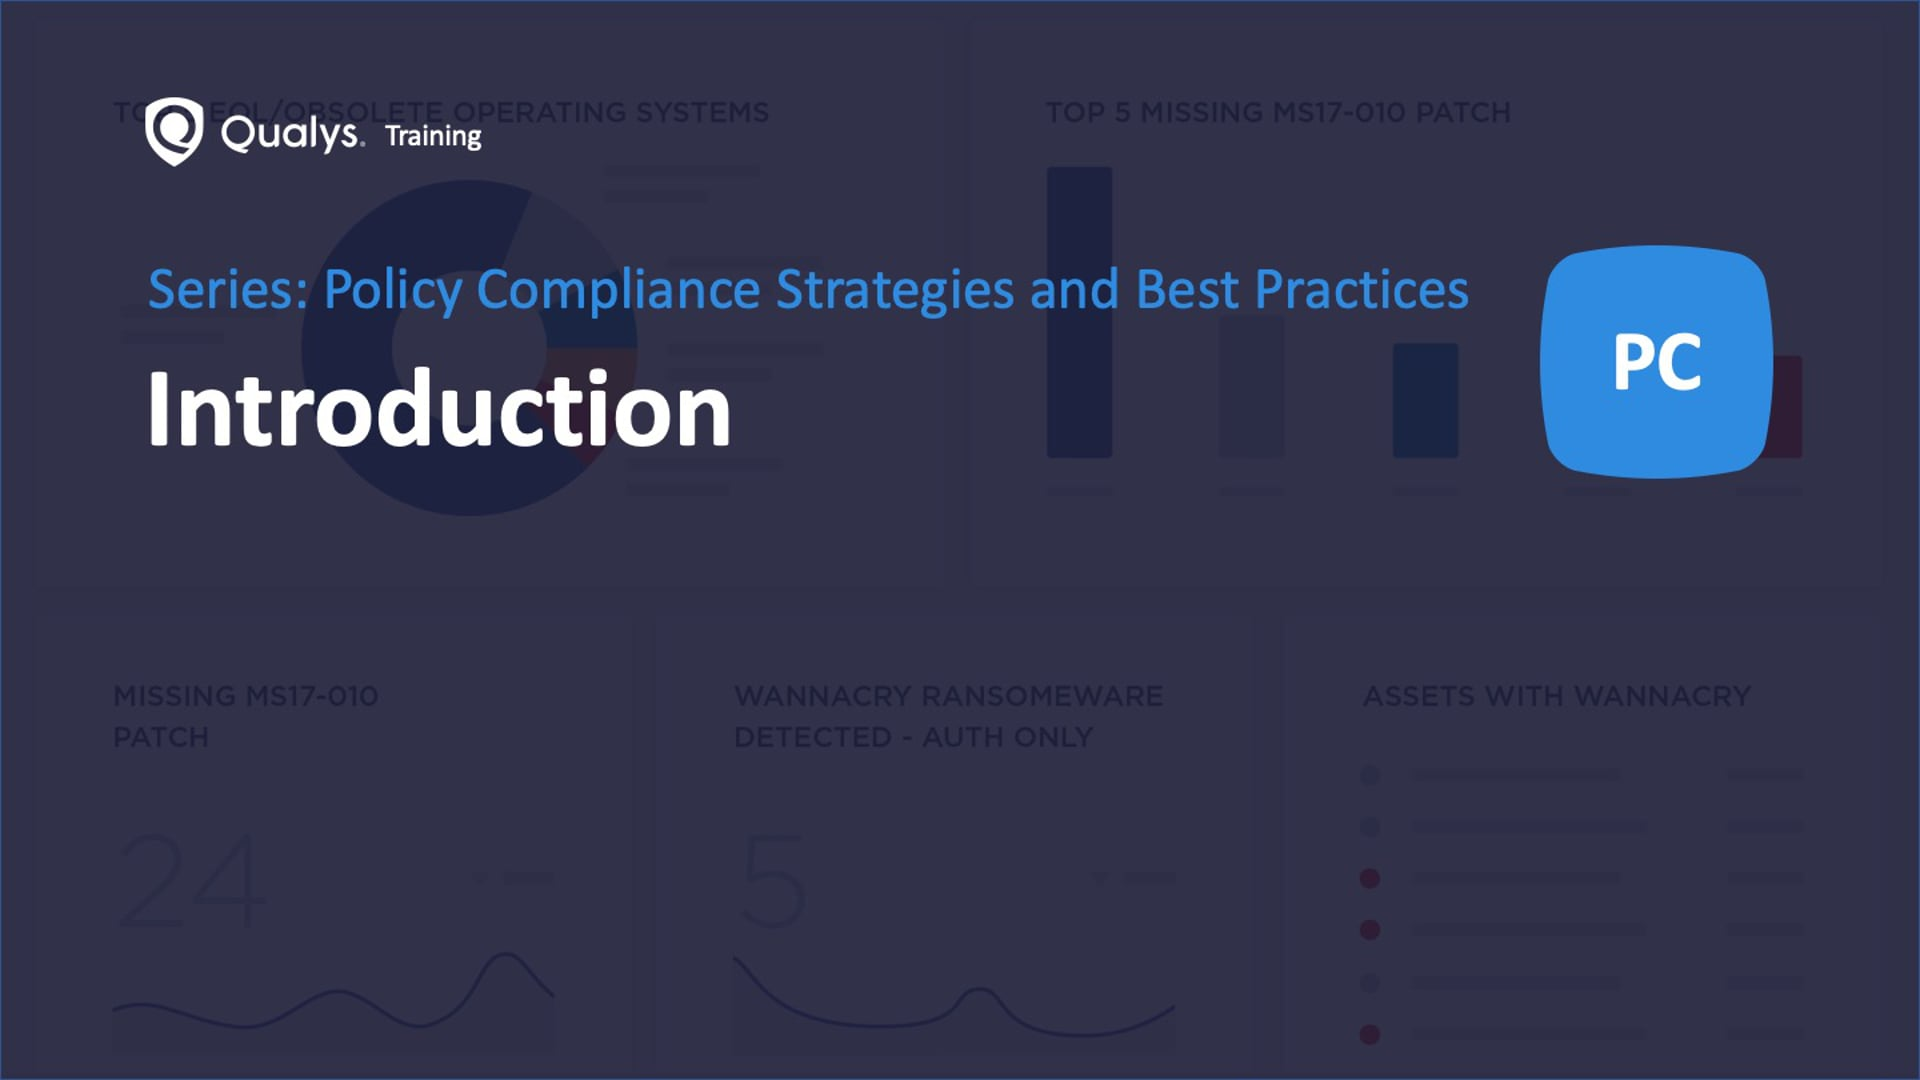 Policy Compliance Strategies & Best Practices